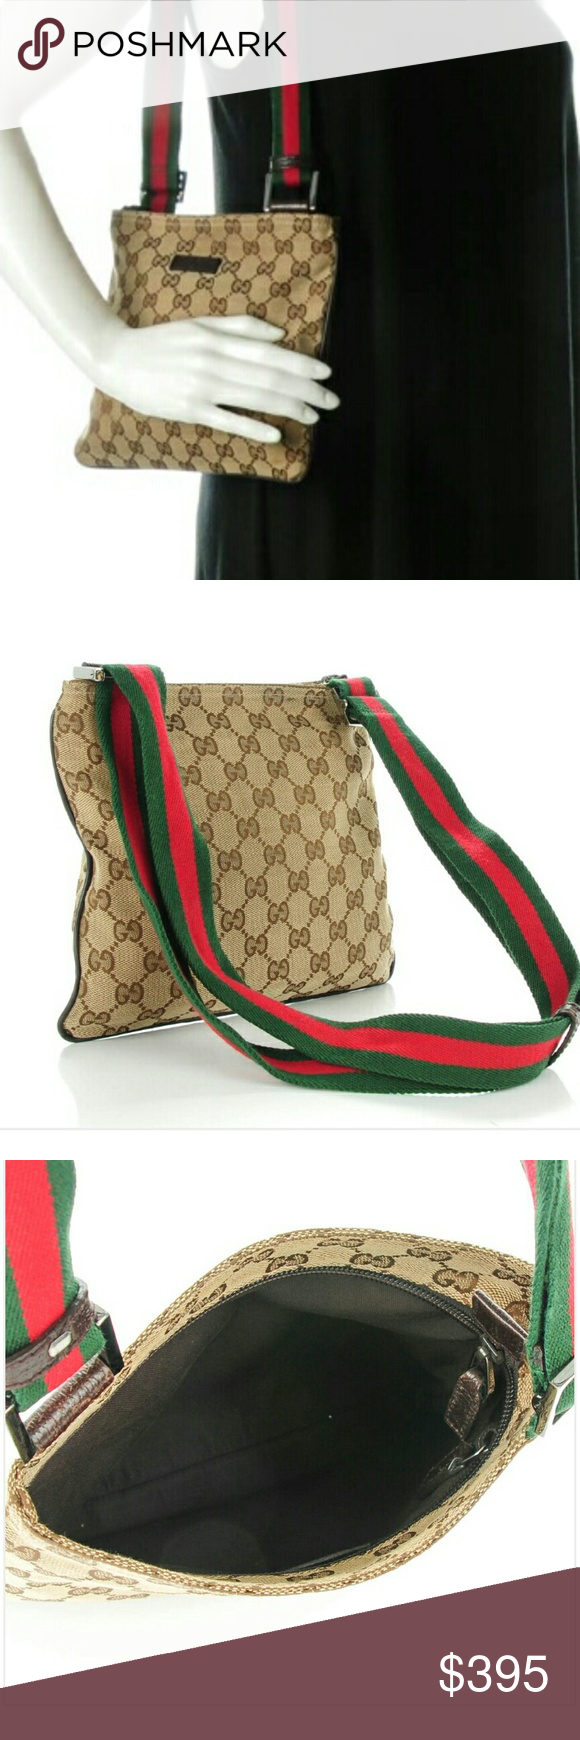 82d47a46f9d1bc Gucci Monogram Web Small Messenger Bag Surface wear, fraying , edge wear ,  discoloring ,